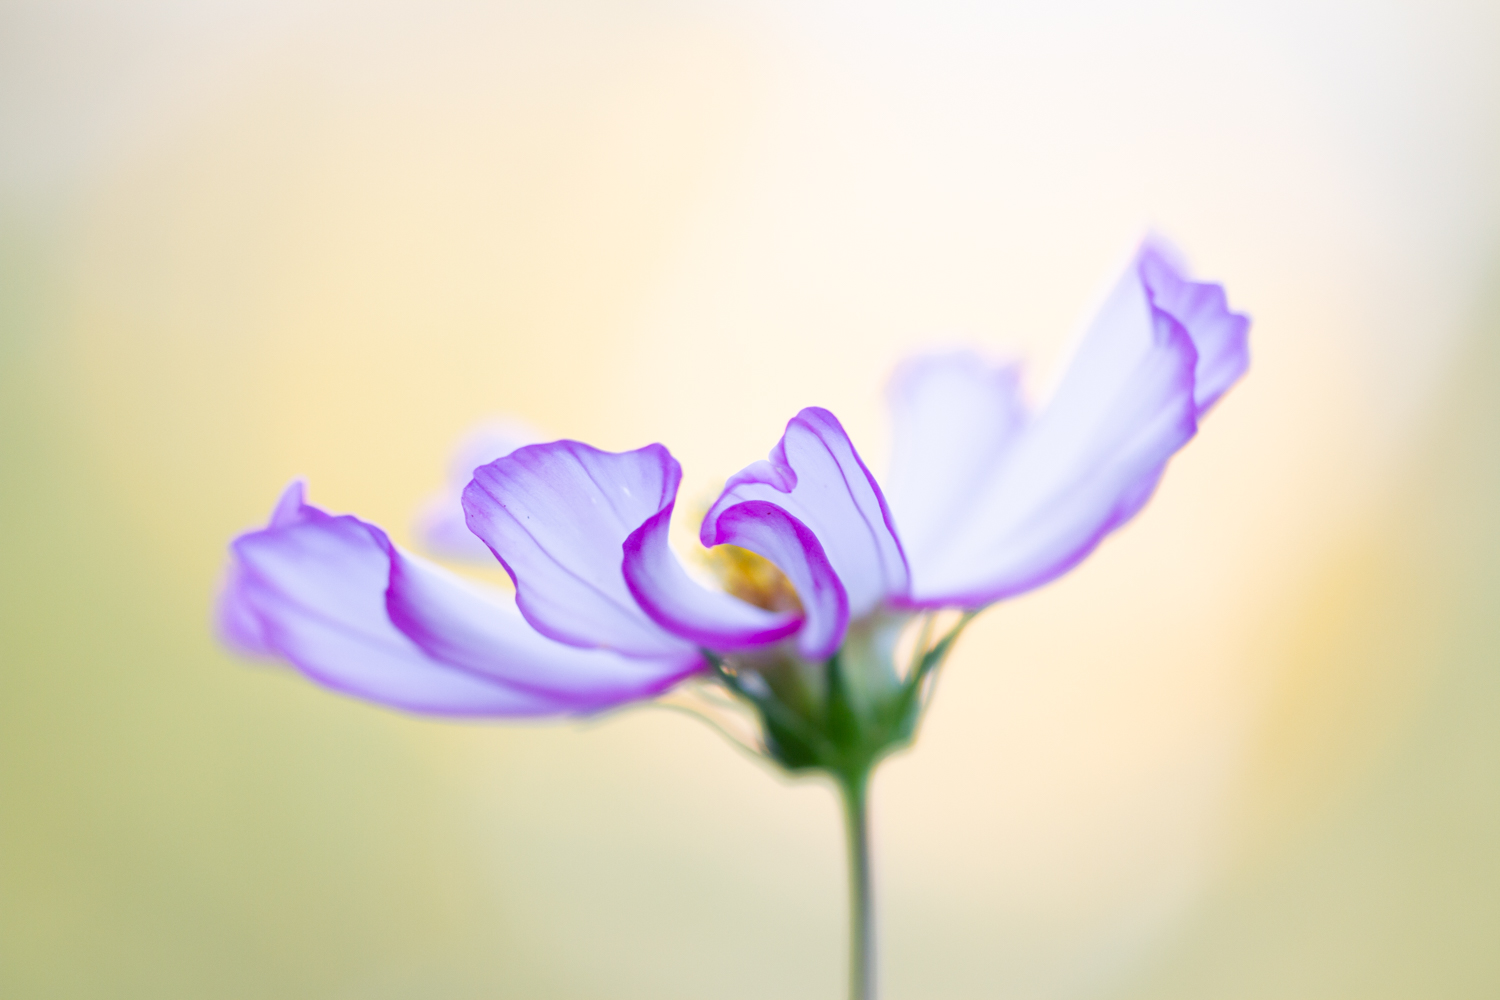 Macro shot of a flower with a shallow depth of field